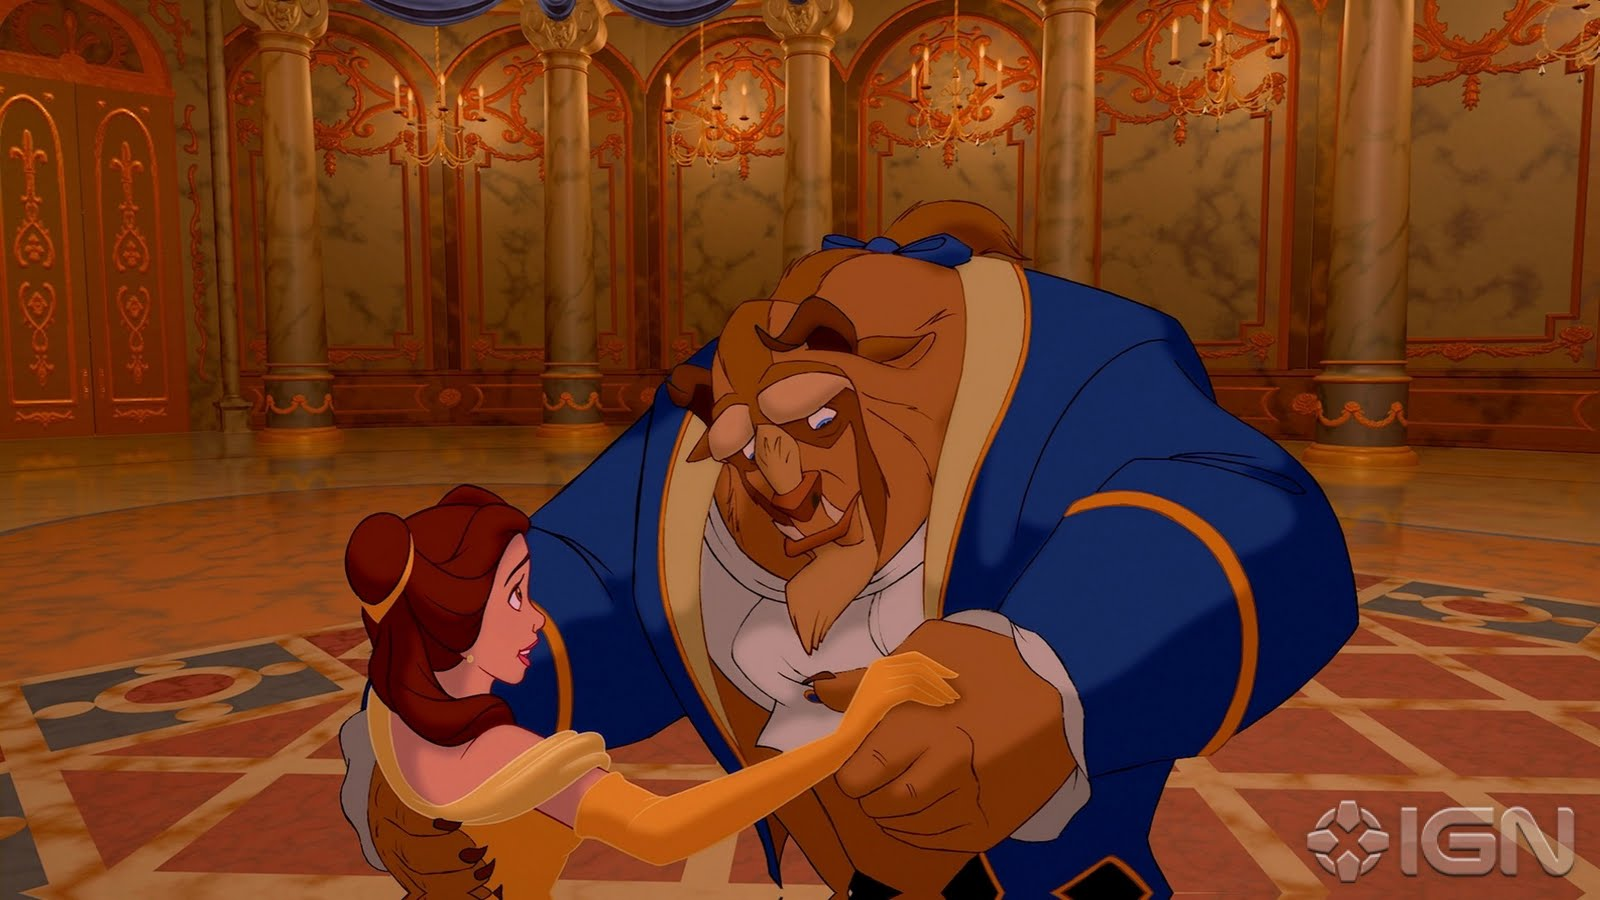 Where Is Wallpaper: beauty and the beast wallpaper hd